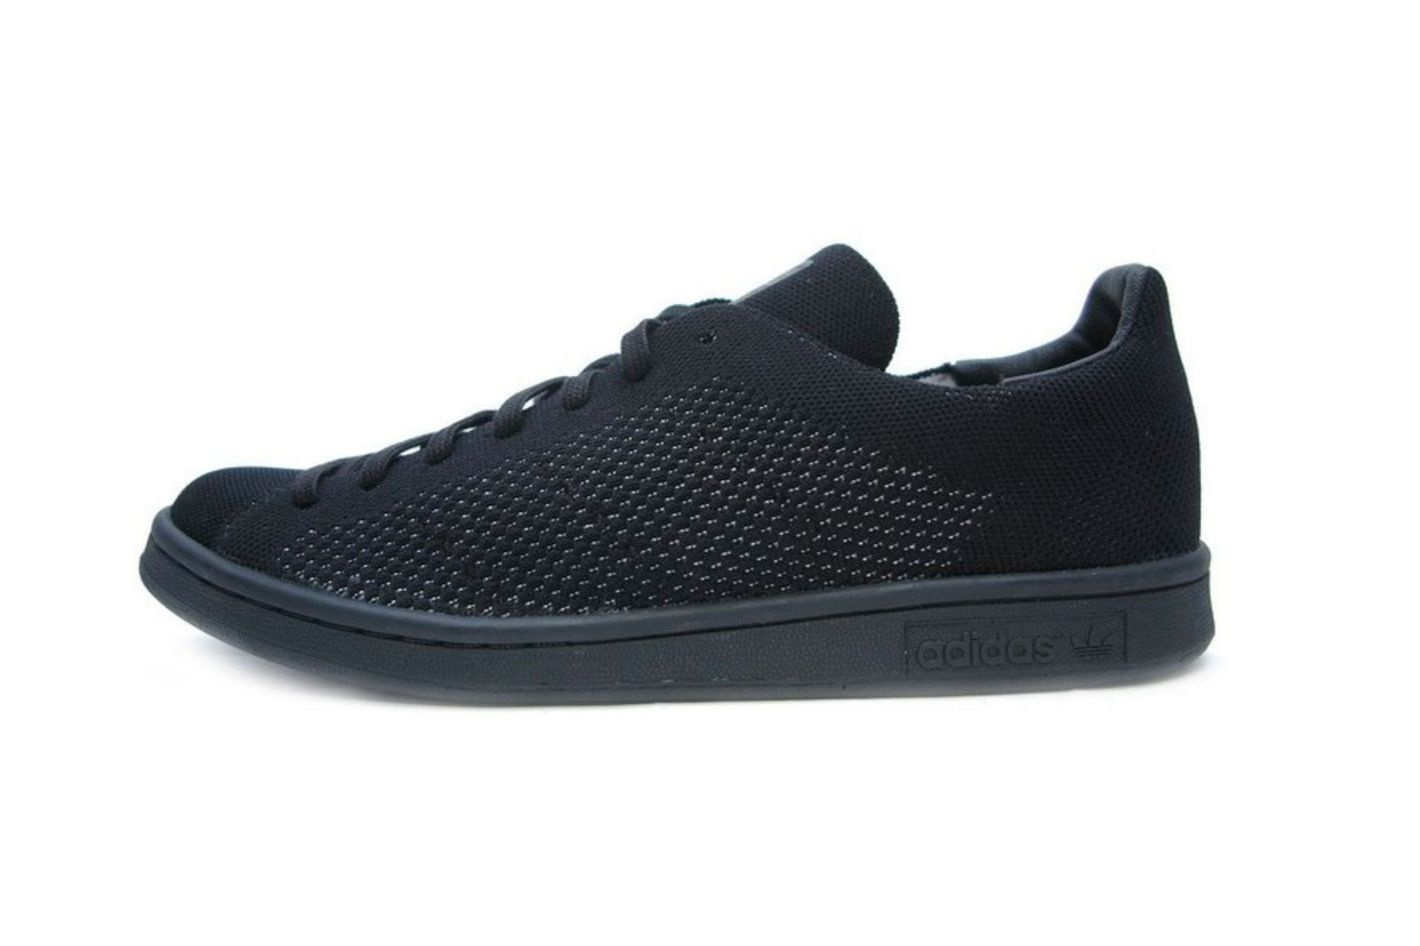 huge discount 0f67d 0e72a Adidas Stan Smith Primeknit